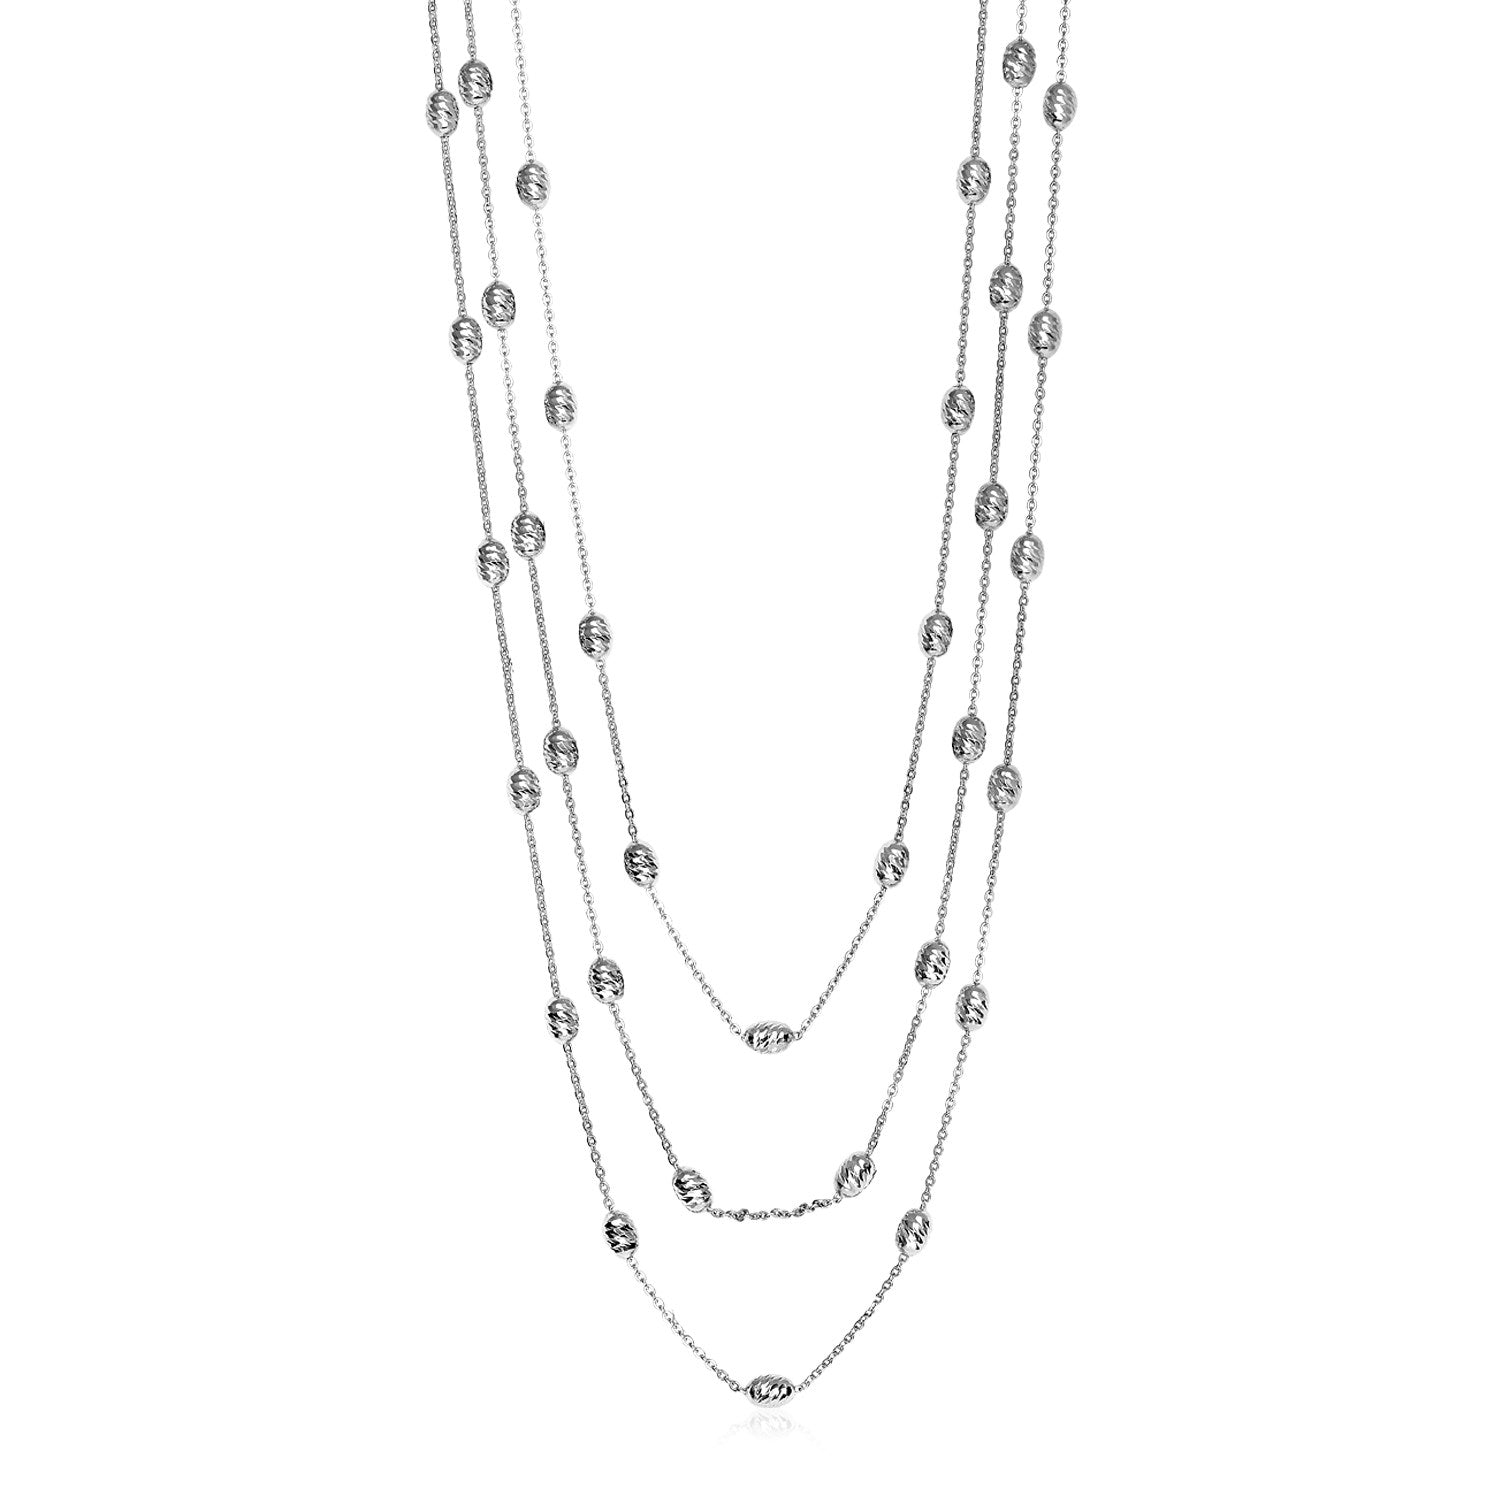 Three Strand Graduated Station Necklace in Sterling Silver